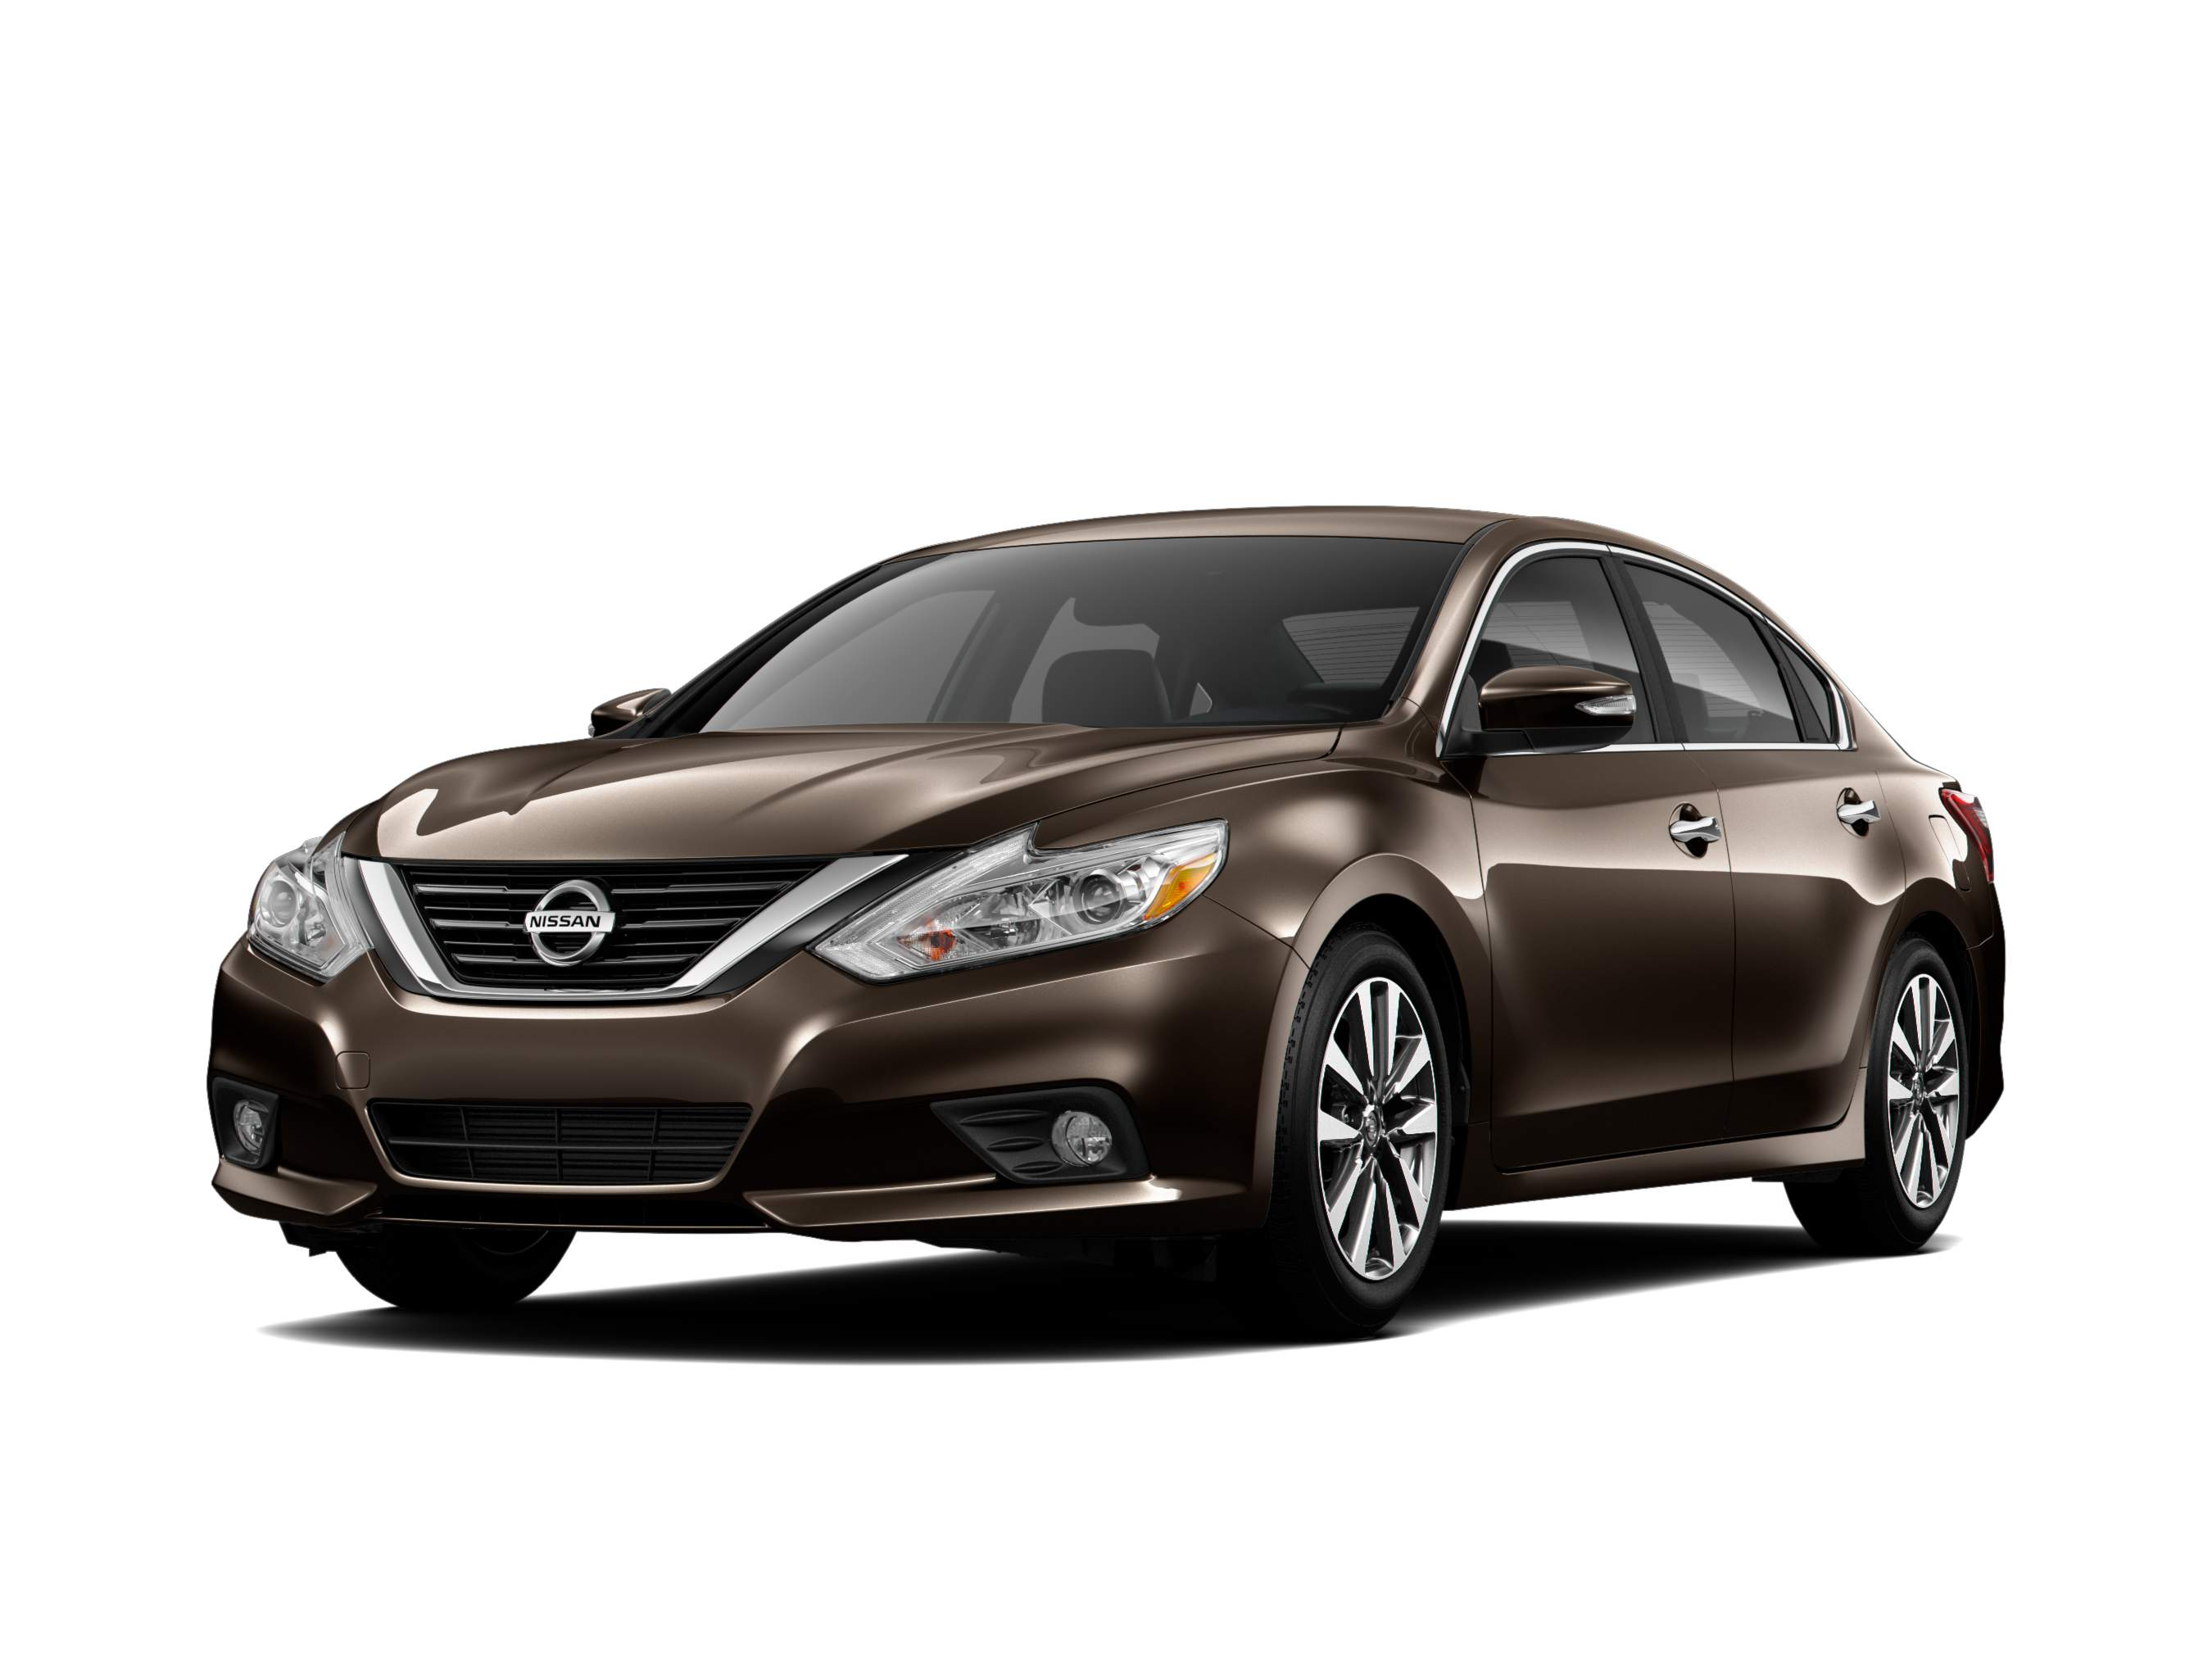 exterior angular charlottesville available htm altima view in front nissan va